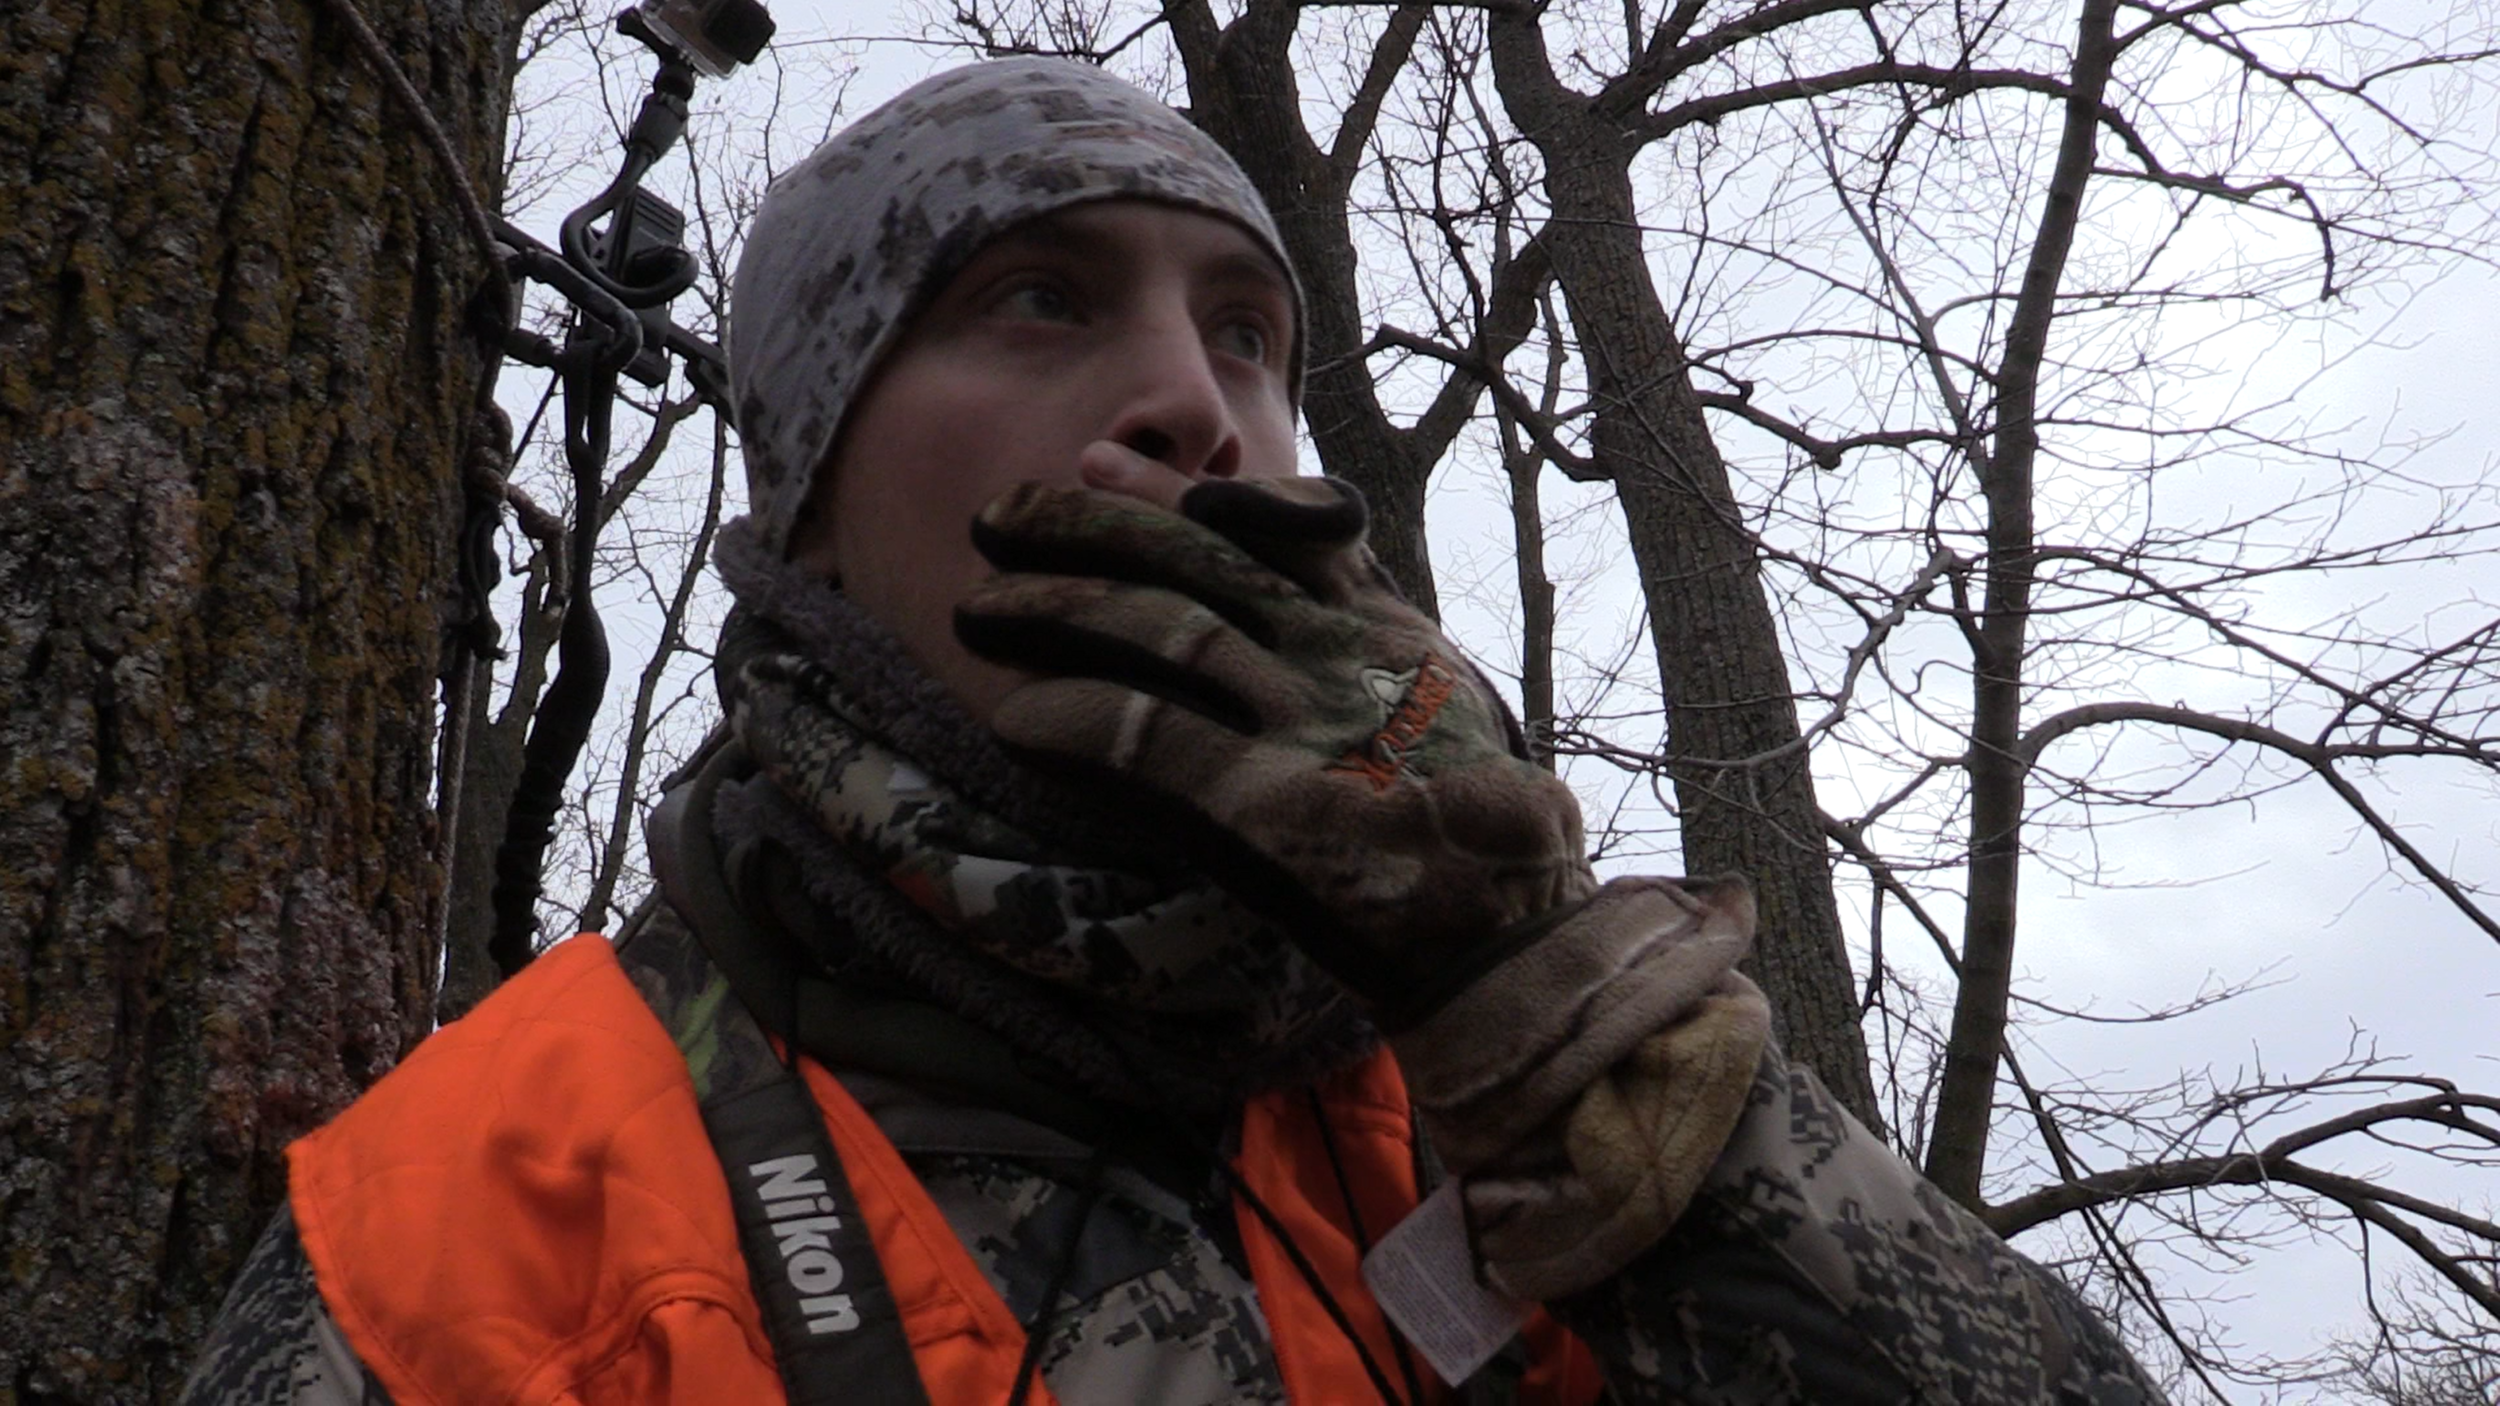 Moments after my shot opportunity on Nov. 17th. Not long after, my high would come crashing down in realization that I didn't make a lethal shot on the giant 8 pointer.